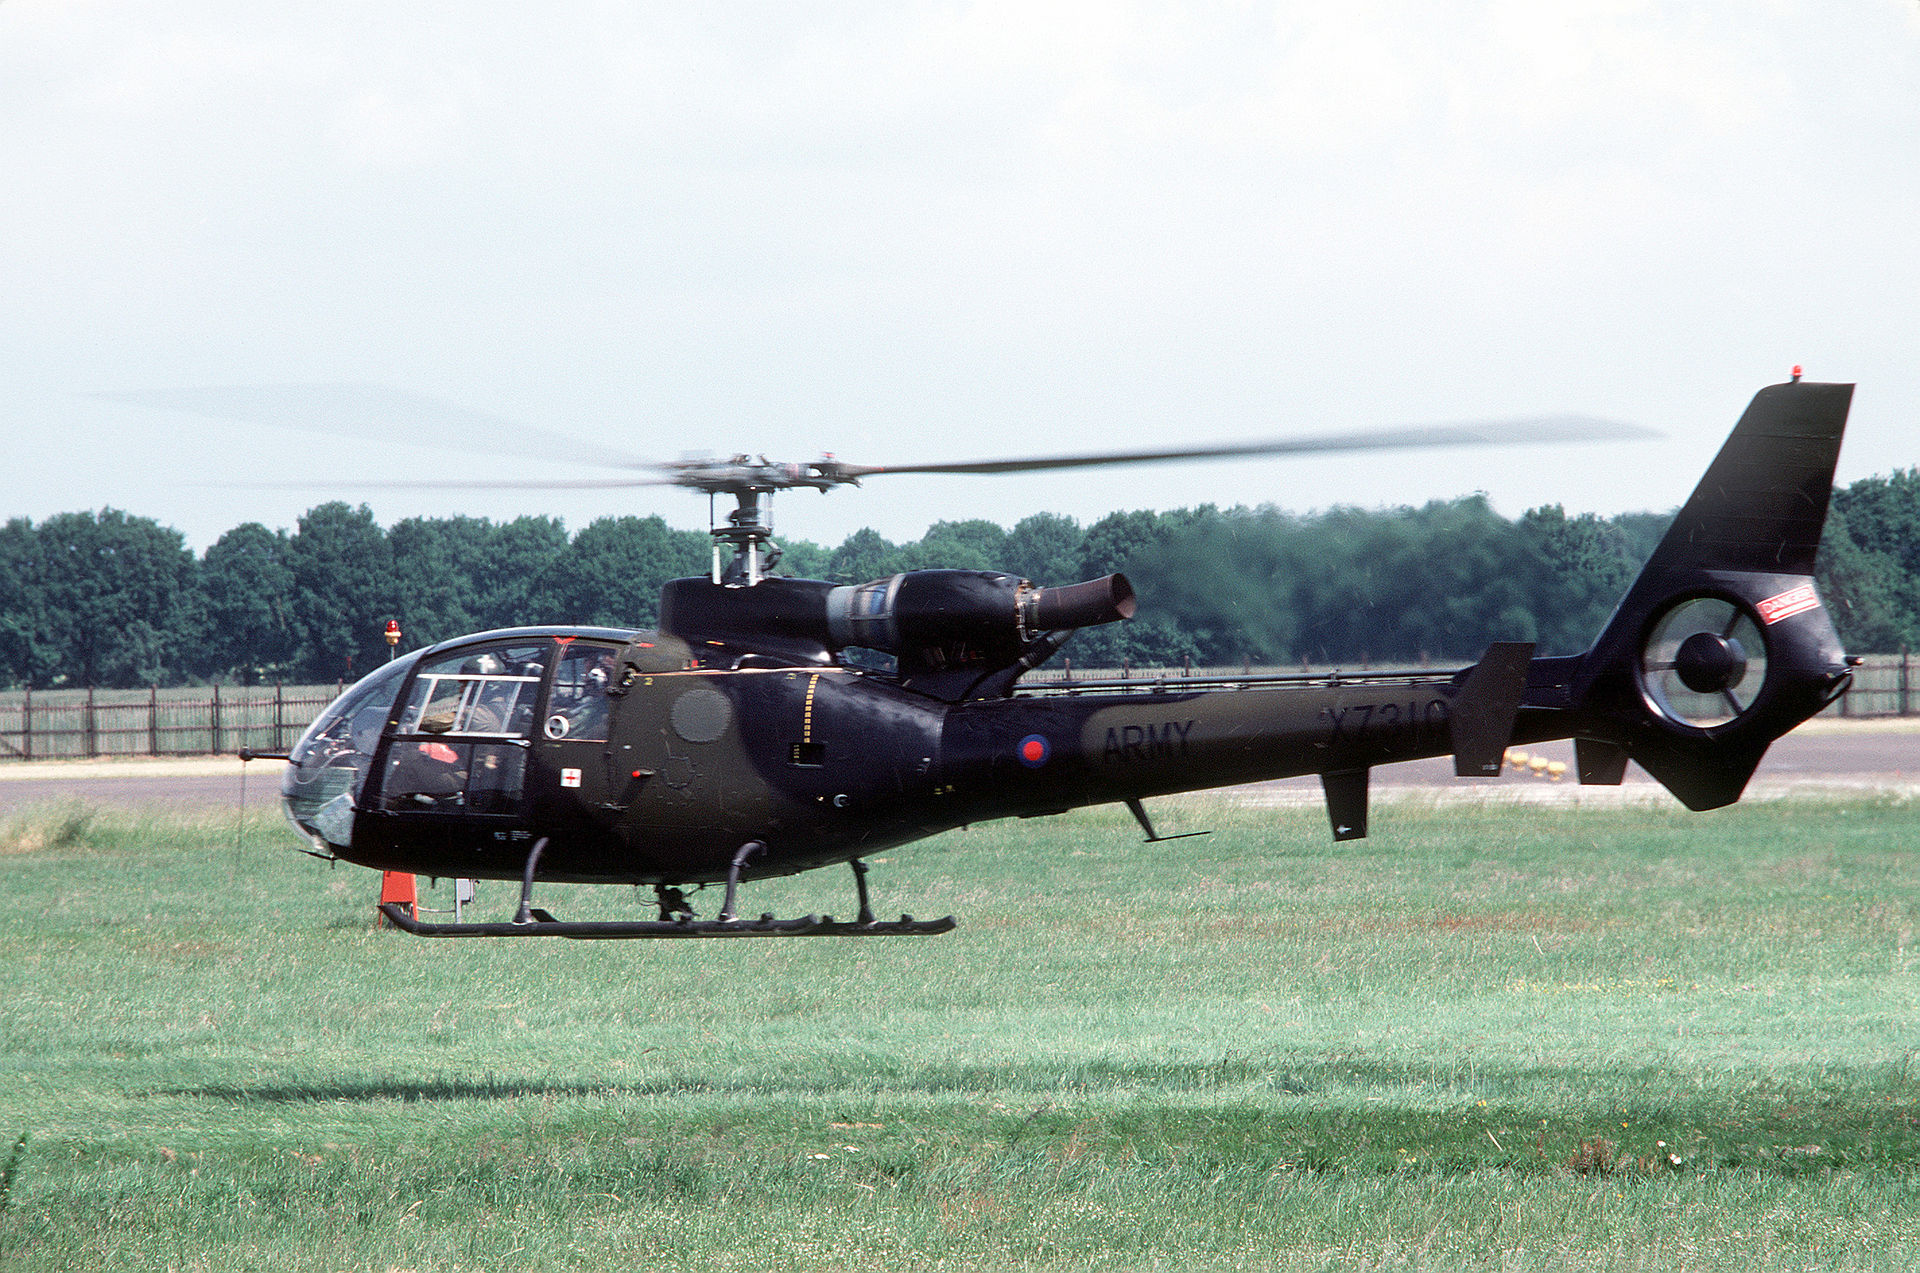 blue ridge helicopters with 1982 British Army Gazelle Friendly Fire Incident on Vietnam War Fall Of Saigon moreover Projects Details in addition Brown in addition 1982 British Army Gazelle friendly fire incident as well Luxury Waterfront Estate In Smith Mountain Lake Virginia 732343.